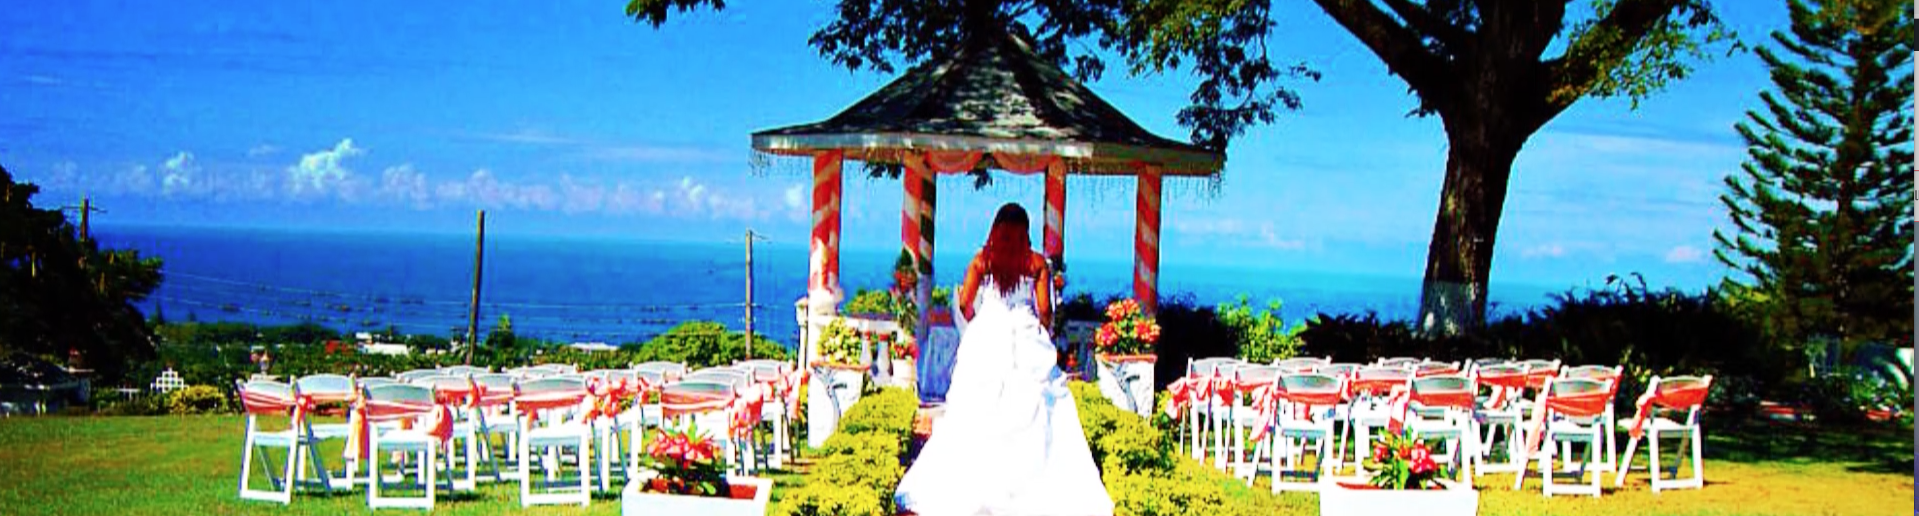 Gazebo Wedding Planning Jamaica